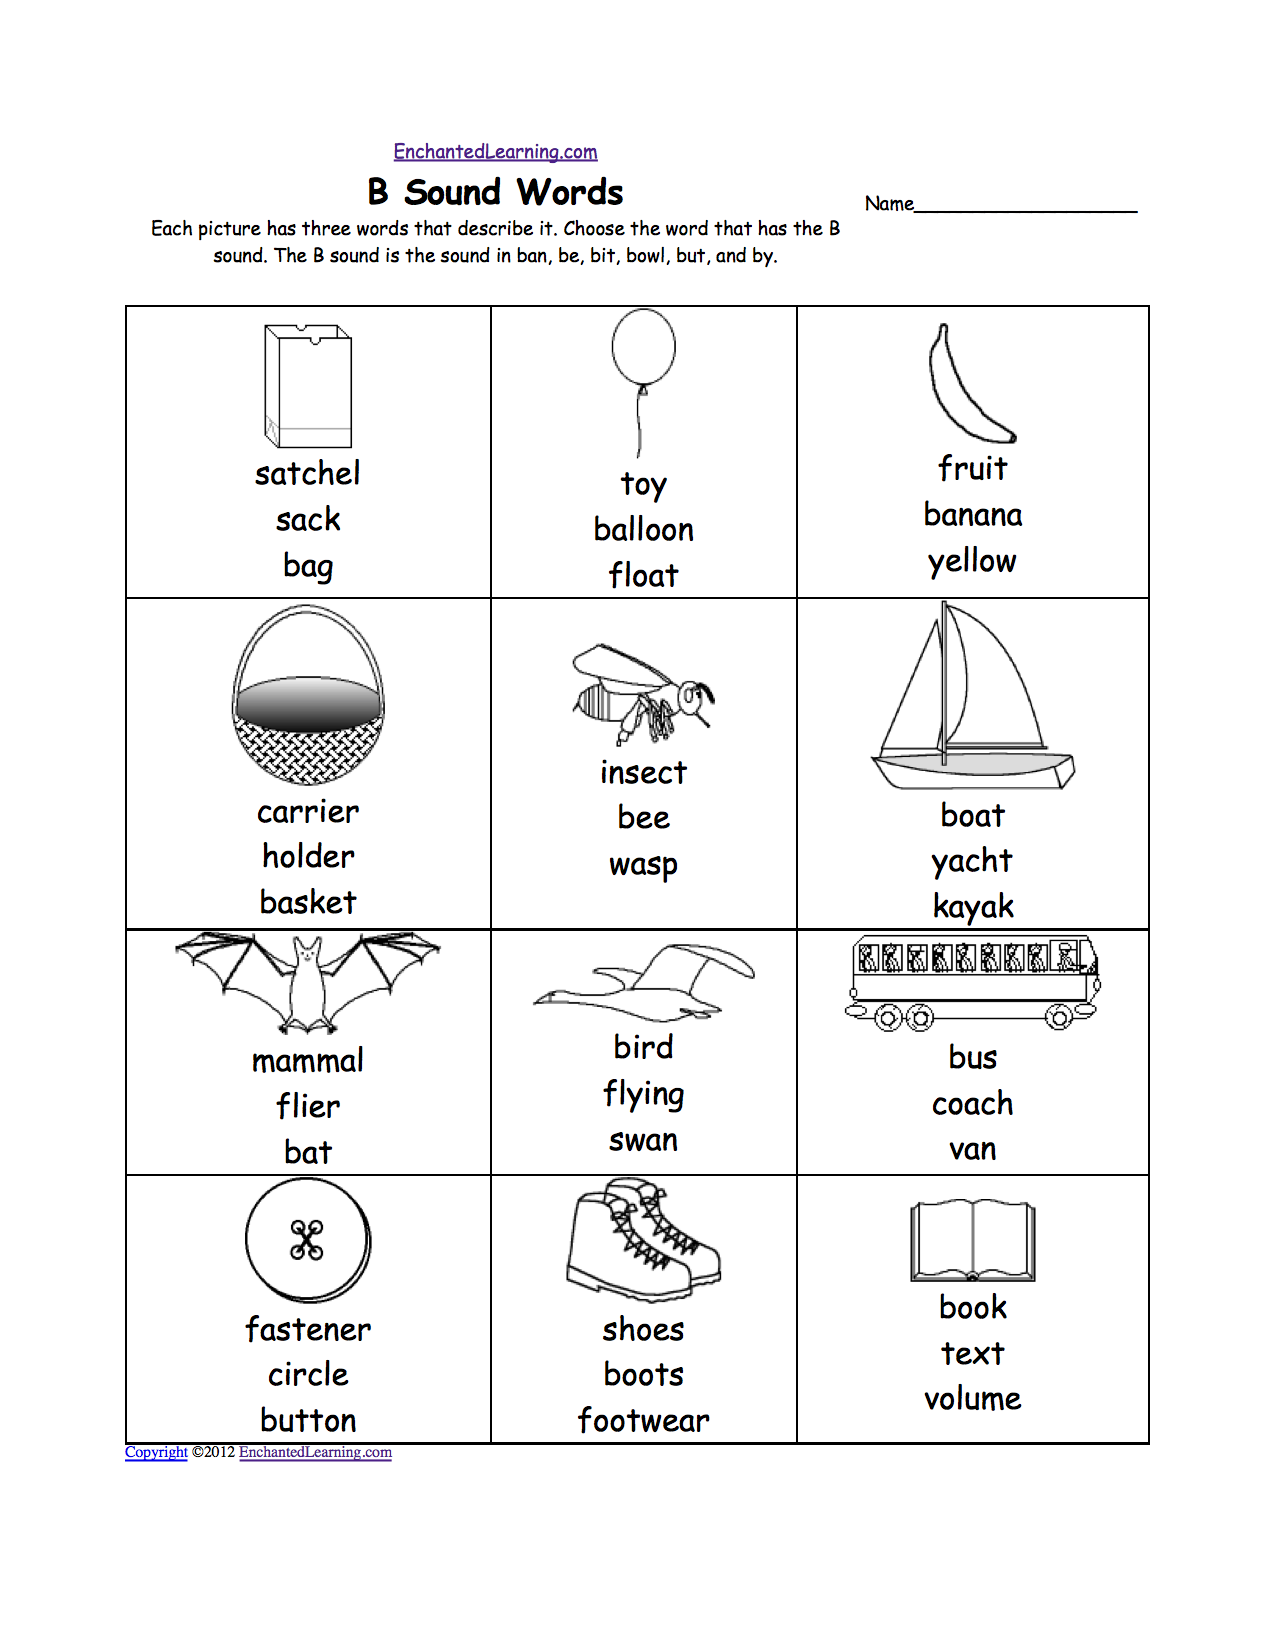 Weirdmailus  Fascinating Phonics Worksheets Multiple Choice Worksheets To Print  With Excellent Quotbquot Sound Phonics Worksheet Multiple Choice Each Picture Has Three Words That Describe It Choose The Word That Has A Quotbquot Sound The Quotbquot Sound Is The Sound  With Astonishing Free Printable Bible Study Worksheets Also Inferences Worksheet  In Addition Predicting Reaction Products Worksheet And Chapter  The Chemistry Of Life Worksheet Answers As Well As Pearson Education Inc Publishing As Pearson Prentice Hall Worksheets Answers Additionally Place Value Blocks Worksheets From Enchantedlearningcom With Weirdmailus  Excellent Phonics Worksheets Multiple Choice Worksheets To Print  With Astonishing Quotbquot Sound Phonics Worksheet Multiple Choice Each Picture Has Three Words That Describe It Choose The Word That Has A Quotbquot Sound The Quotbquot Sound Is The Sound  And Fascinating Free Printable Bible Study Worksheets Also Inferences Worksheet  In Addition Predicting Reaction Products Worksheet From Enchantedlearningcom